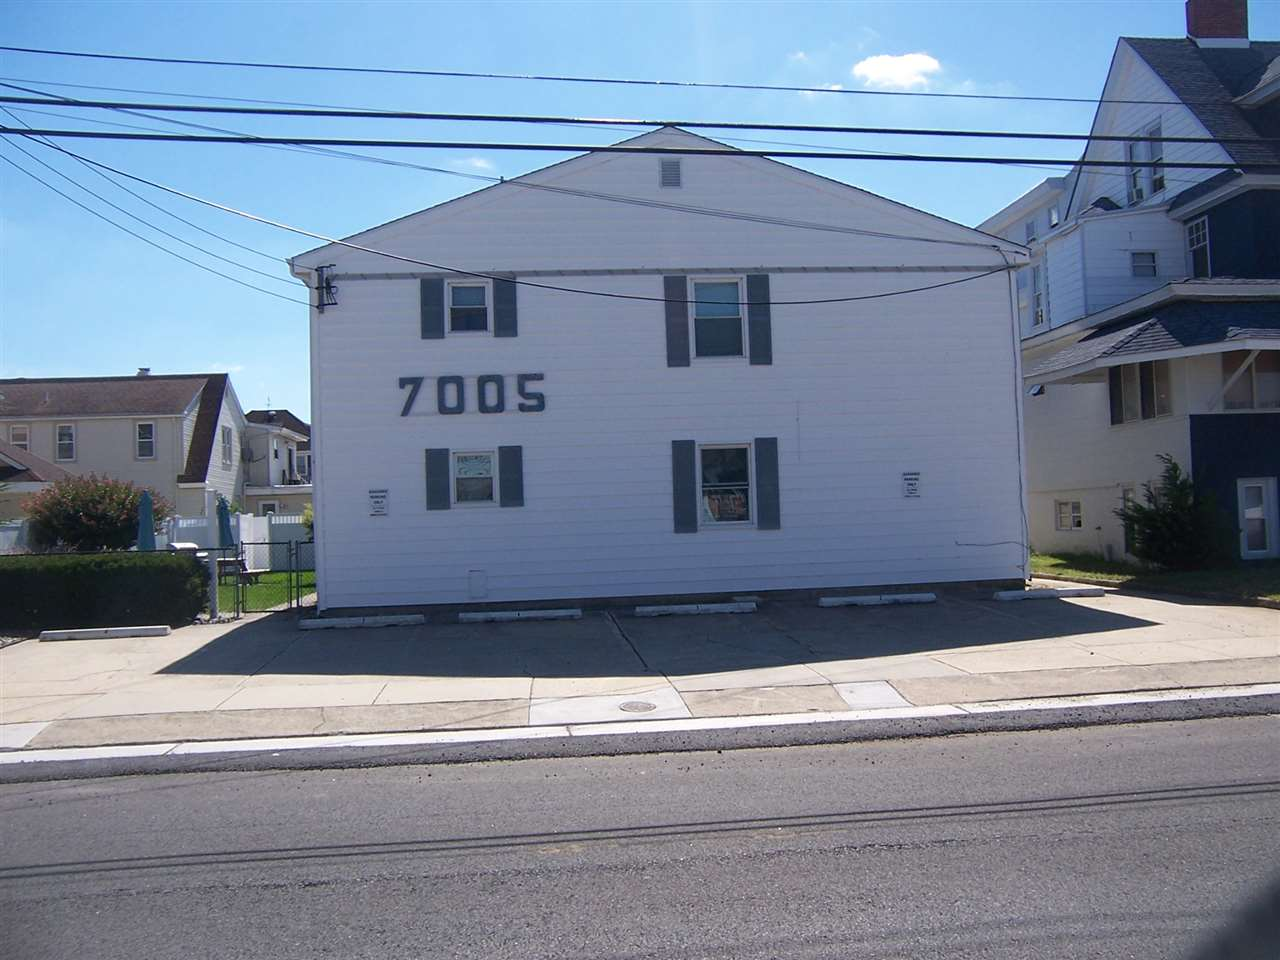 7005 Pacific, Wildwood Crest, NJ 08260